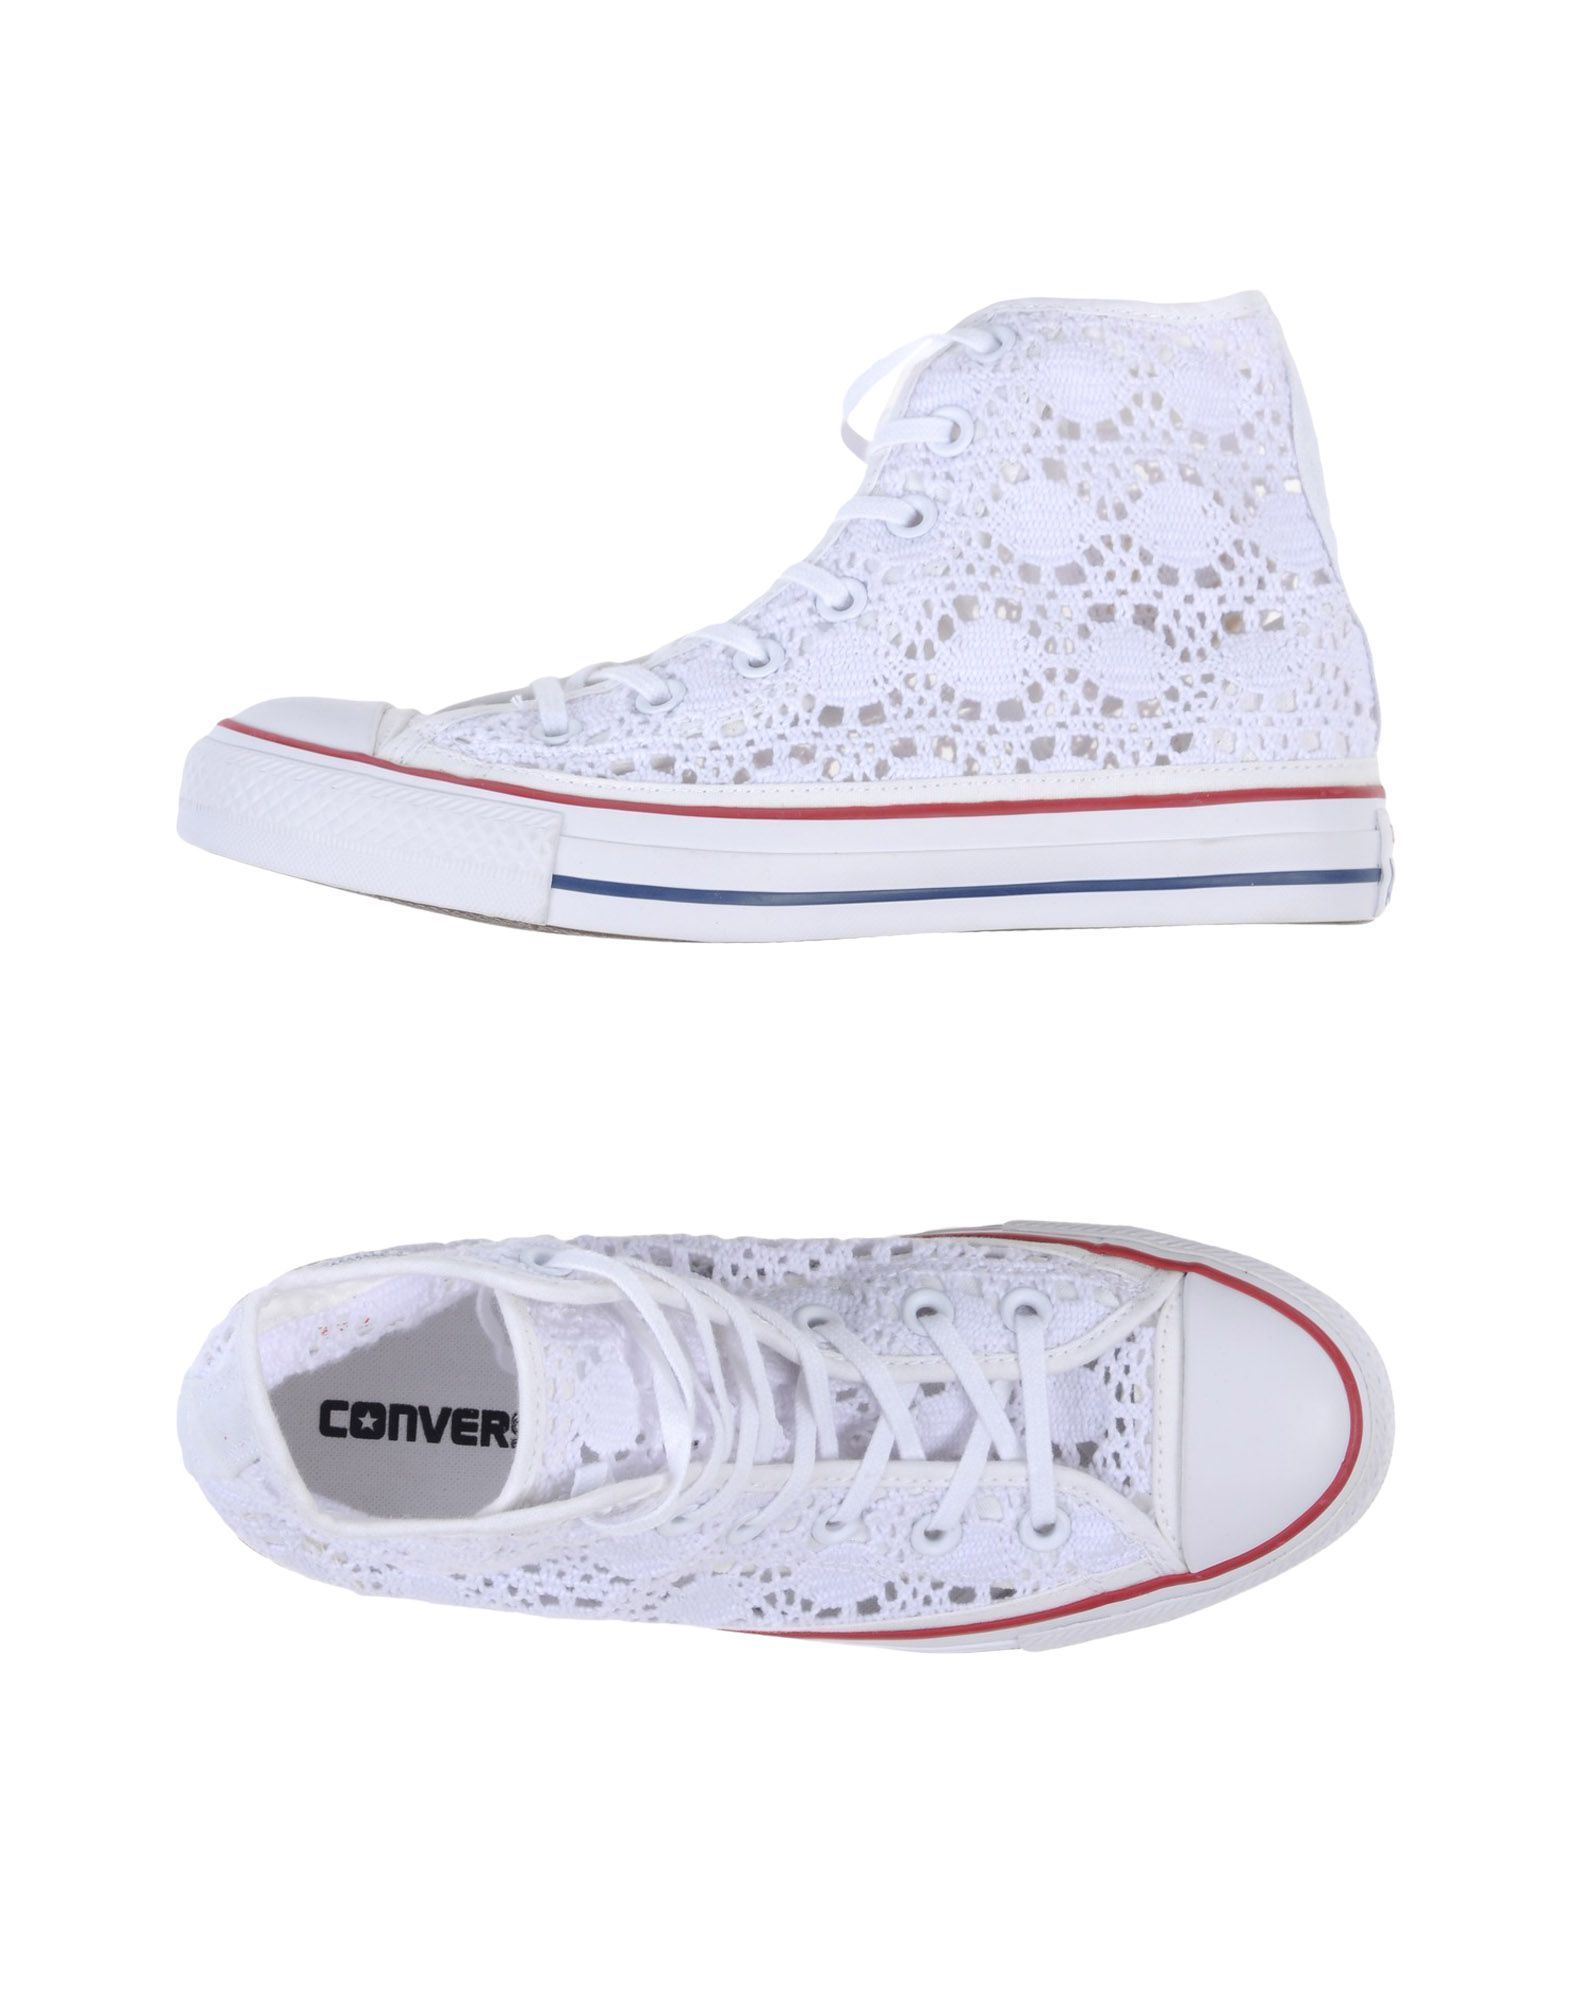 33e73765d082b6 9 Simple and Modern Tricks  Spring Work Shoes converse shoes  outfit.Louboutin Shoes Platform womens shoes autumn.Vans Shoes White.